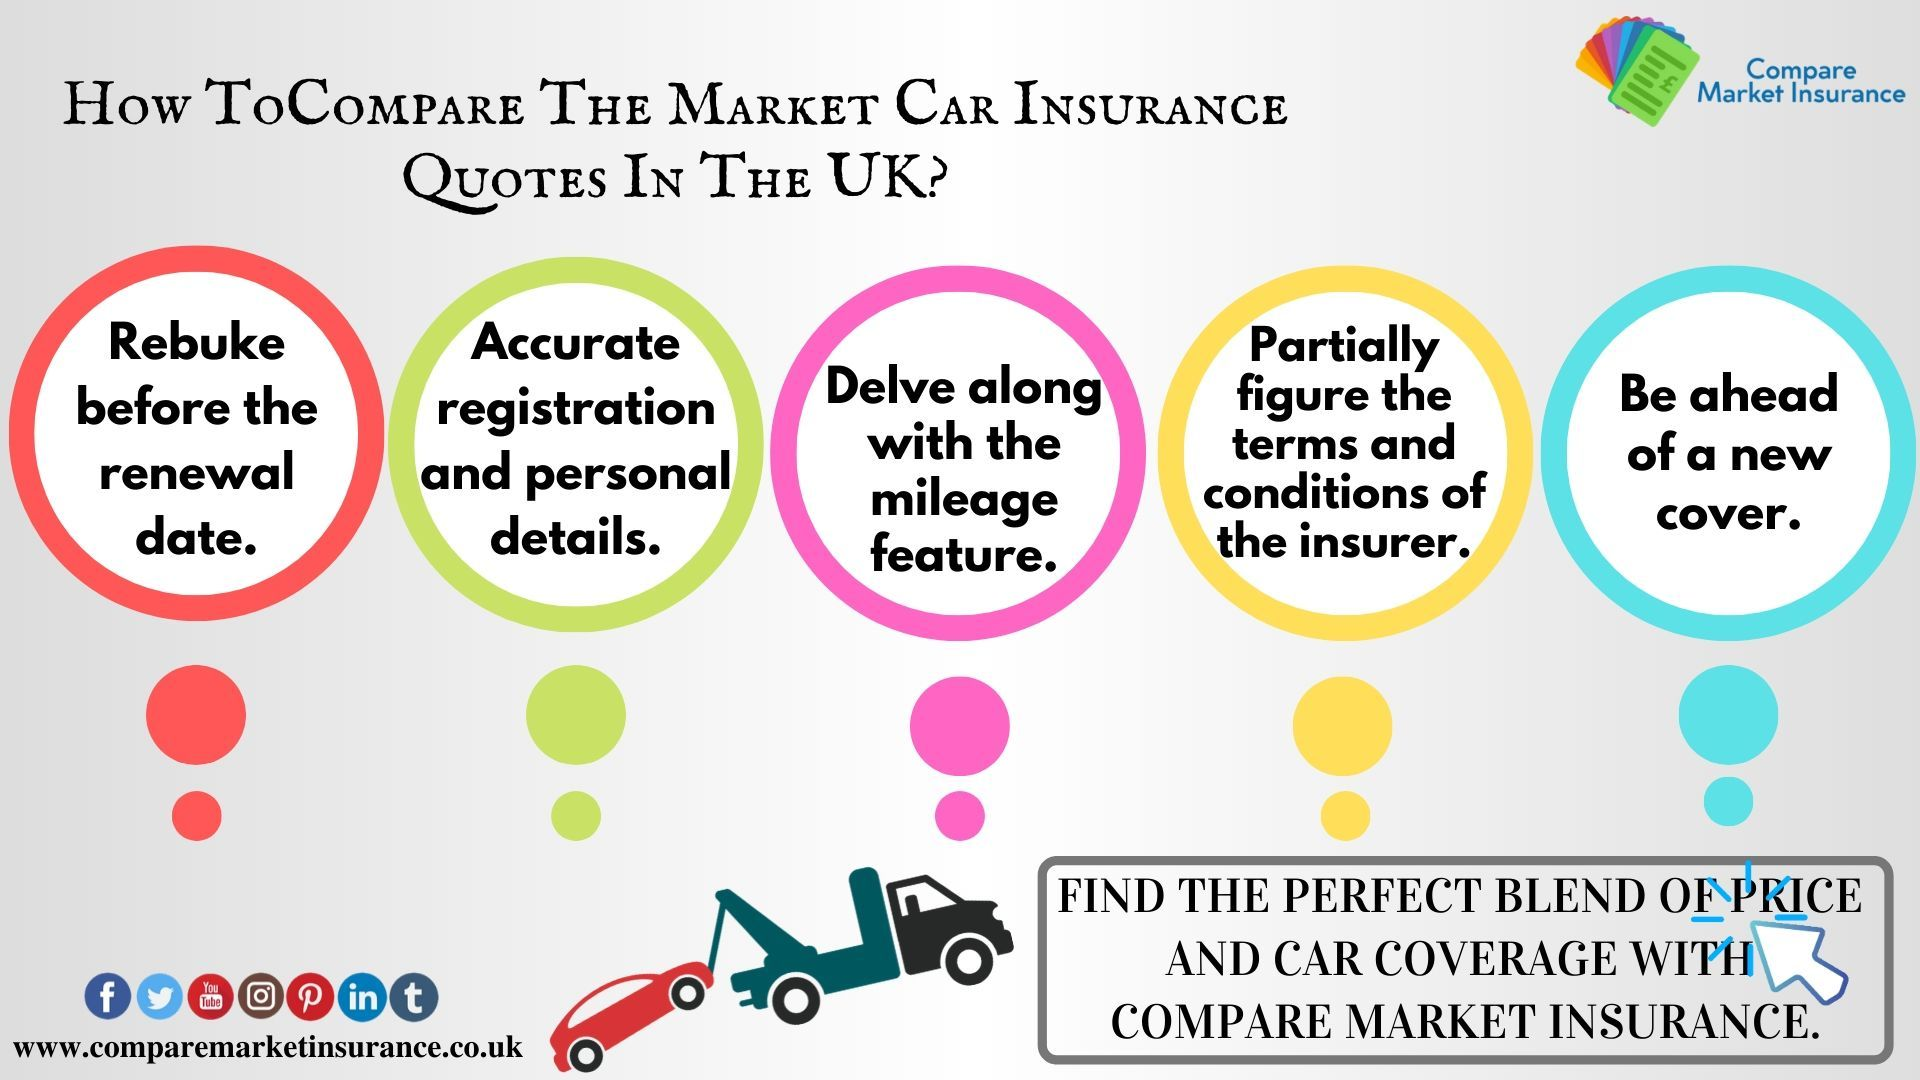 Raise your hand to compare the market car insurance quotes